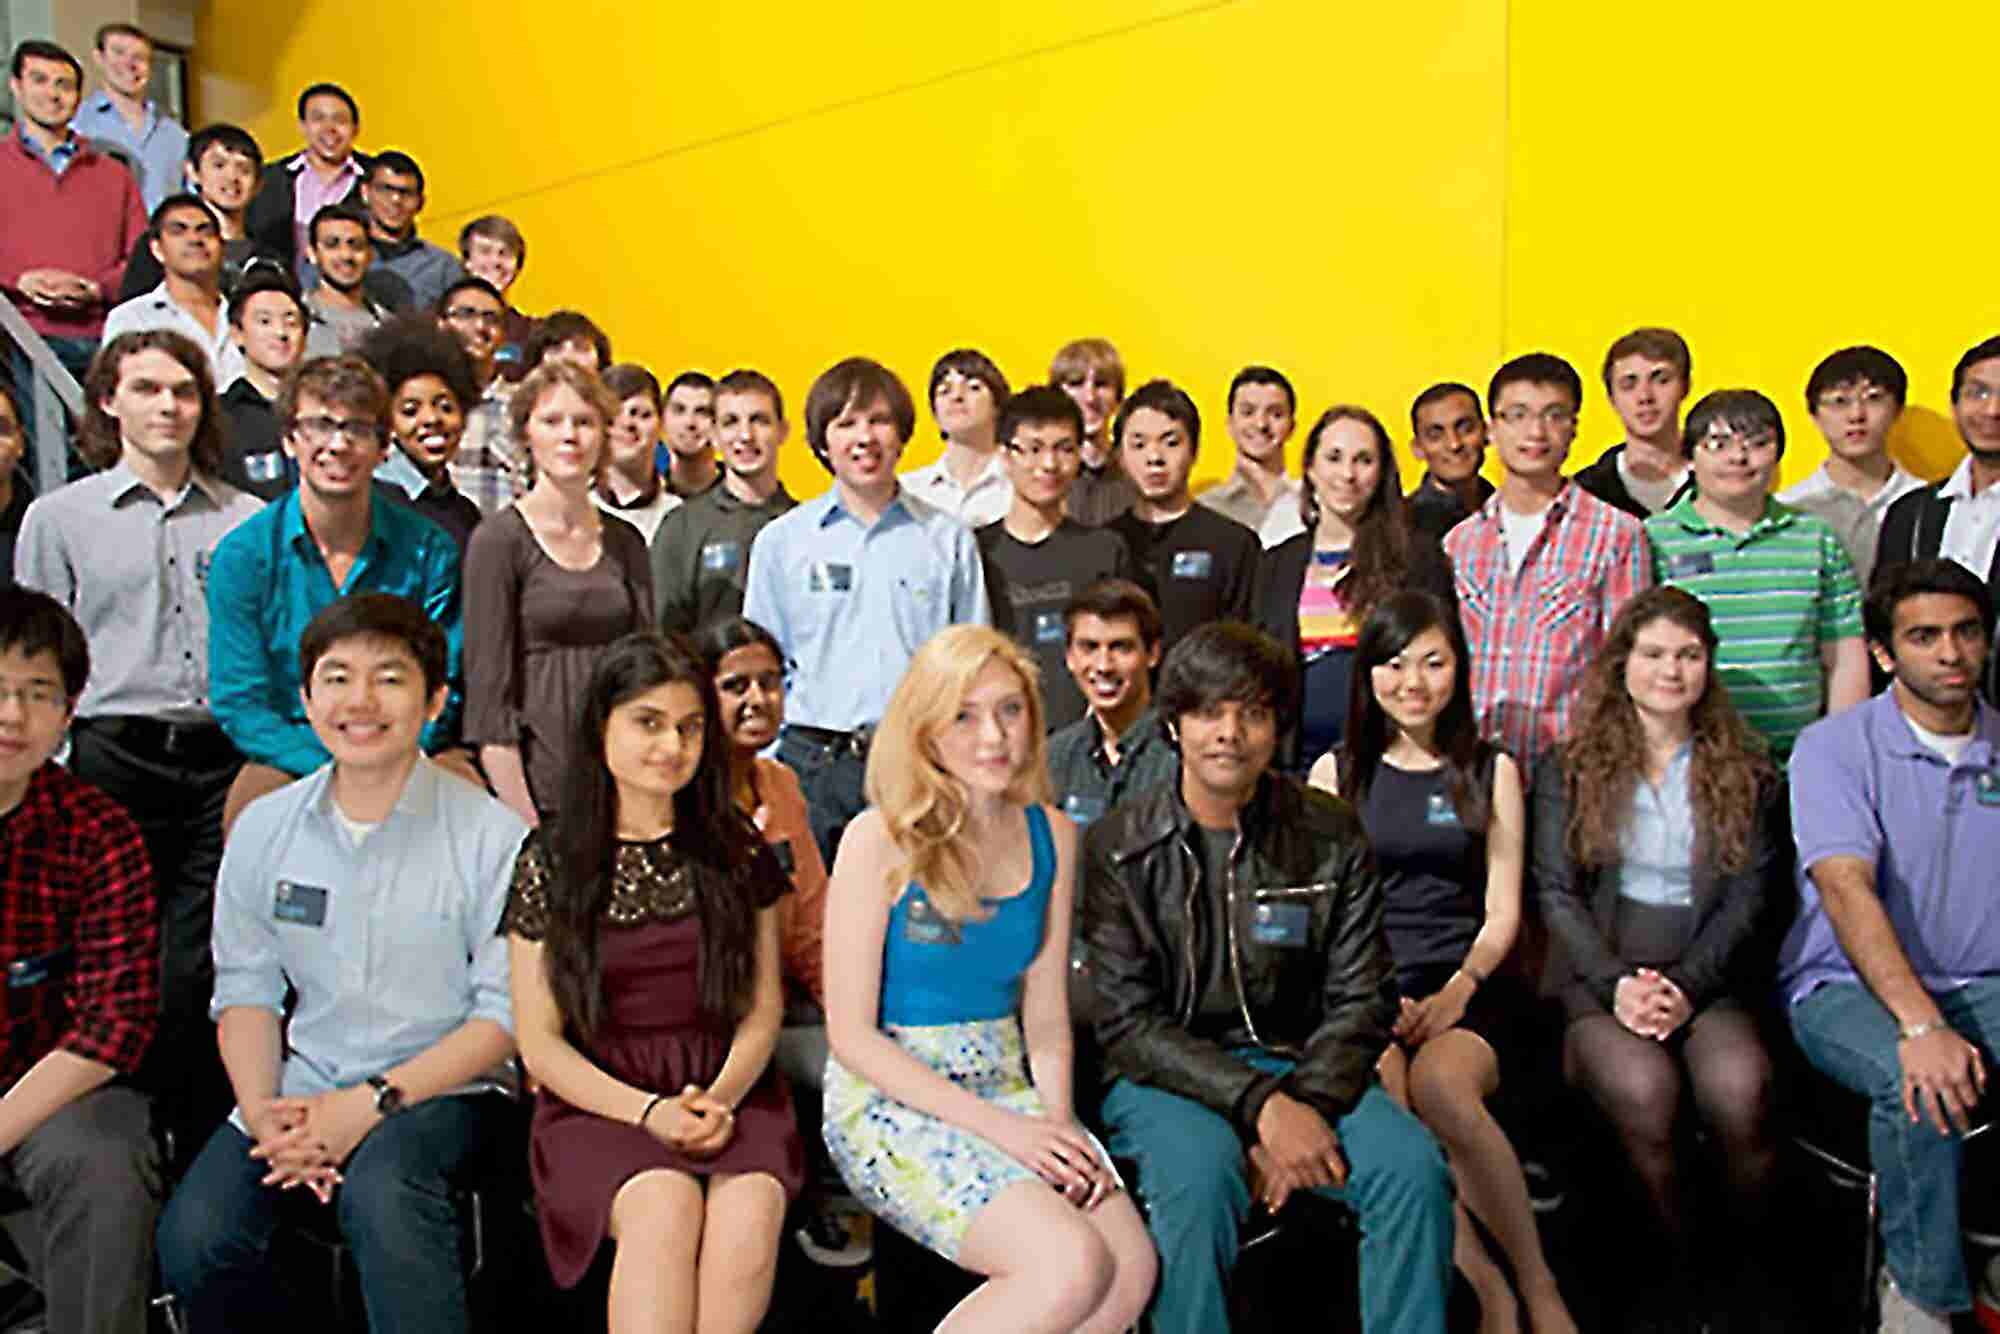 These 20 Teenagers Are Getting $100,000 Each to Drop Out of School and Become Entrepreneurs